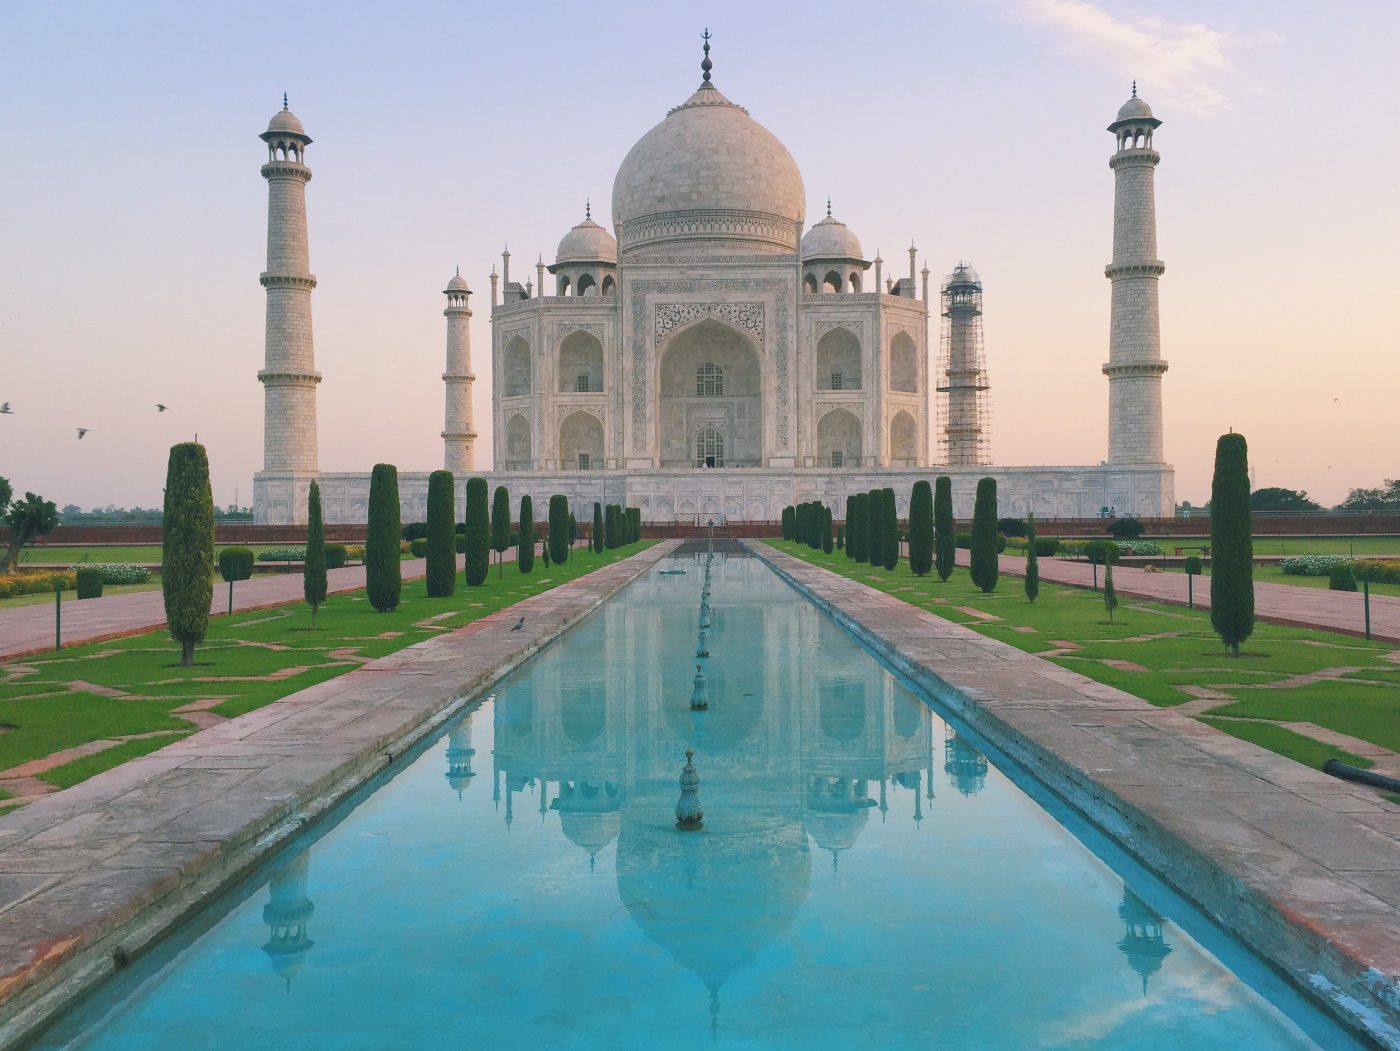 a visit to historical place taj mahal visit to a historical place – taj mahal there are many beautiful and worth seeing historical places in india but the taj mahal of agra is the most beautiful of all.